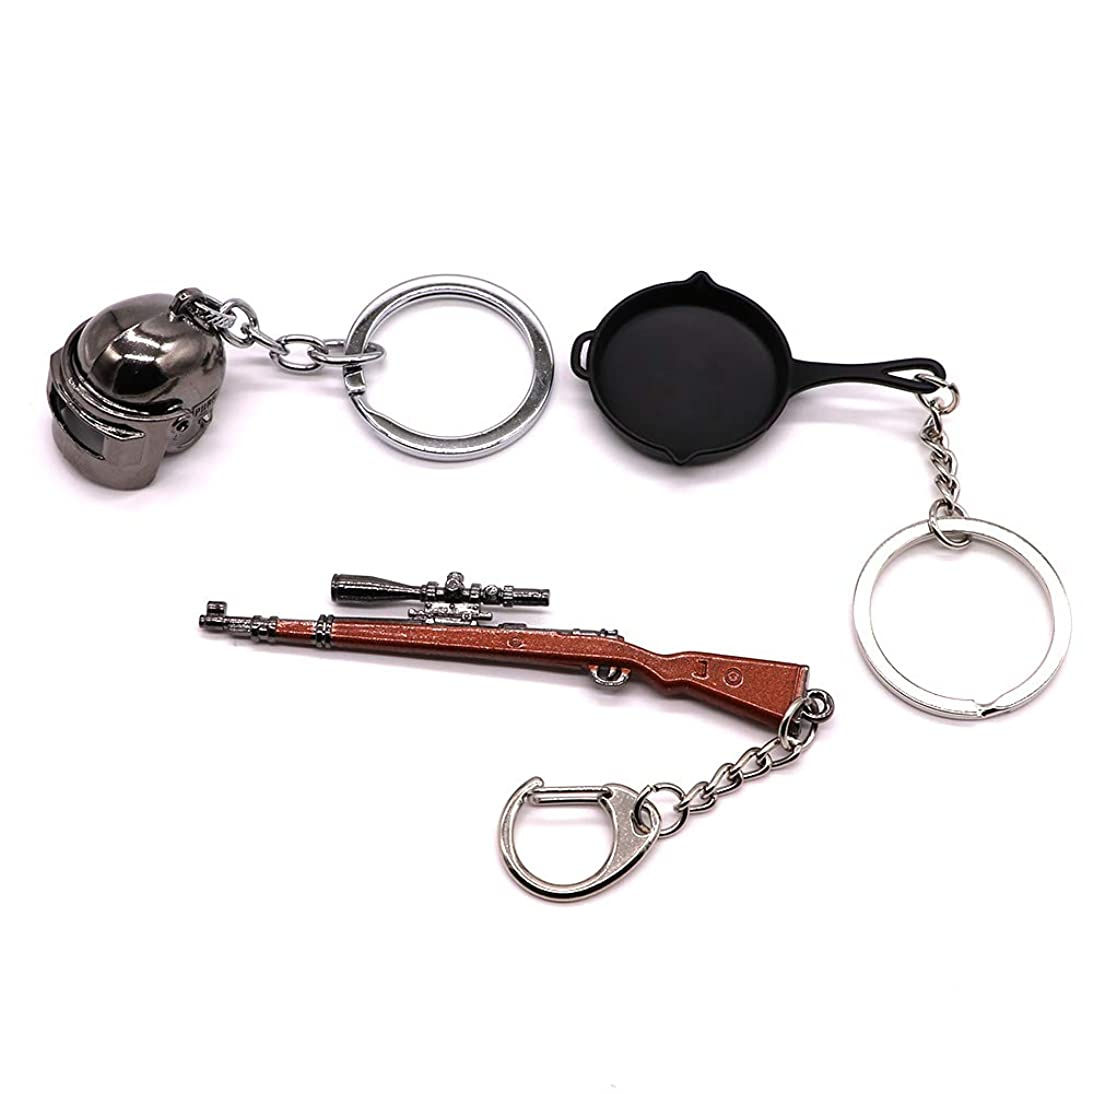 AVEC JOIE Mini Metal Shooting Gun Model Keychain Pendant Keyring Tank Sniper Rifle and Pistol Pendant Keychain Gift for Boyfriend Weaphones and Gun Enthusiasts kvvq708175001270